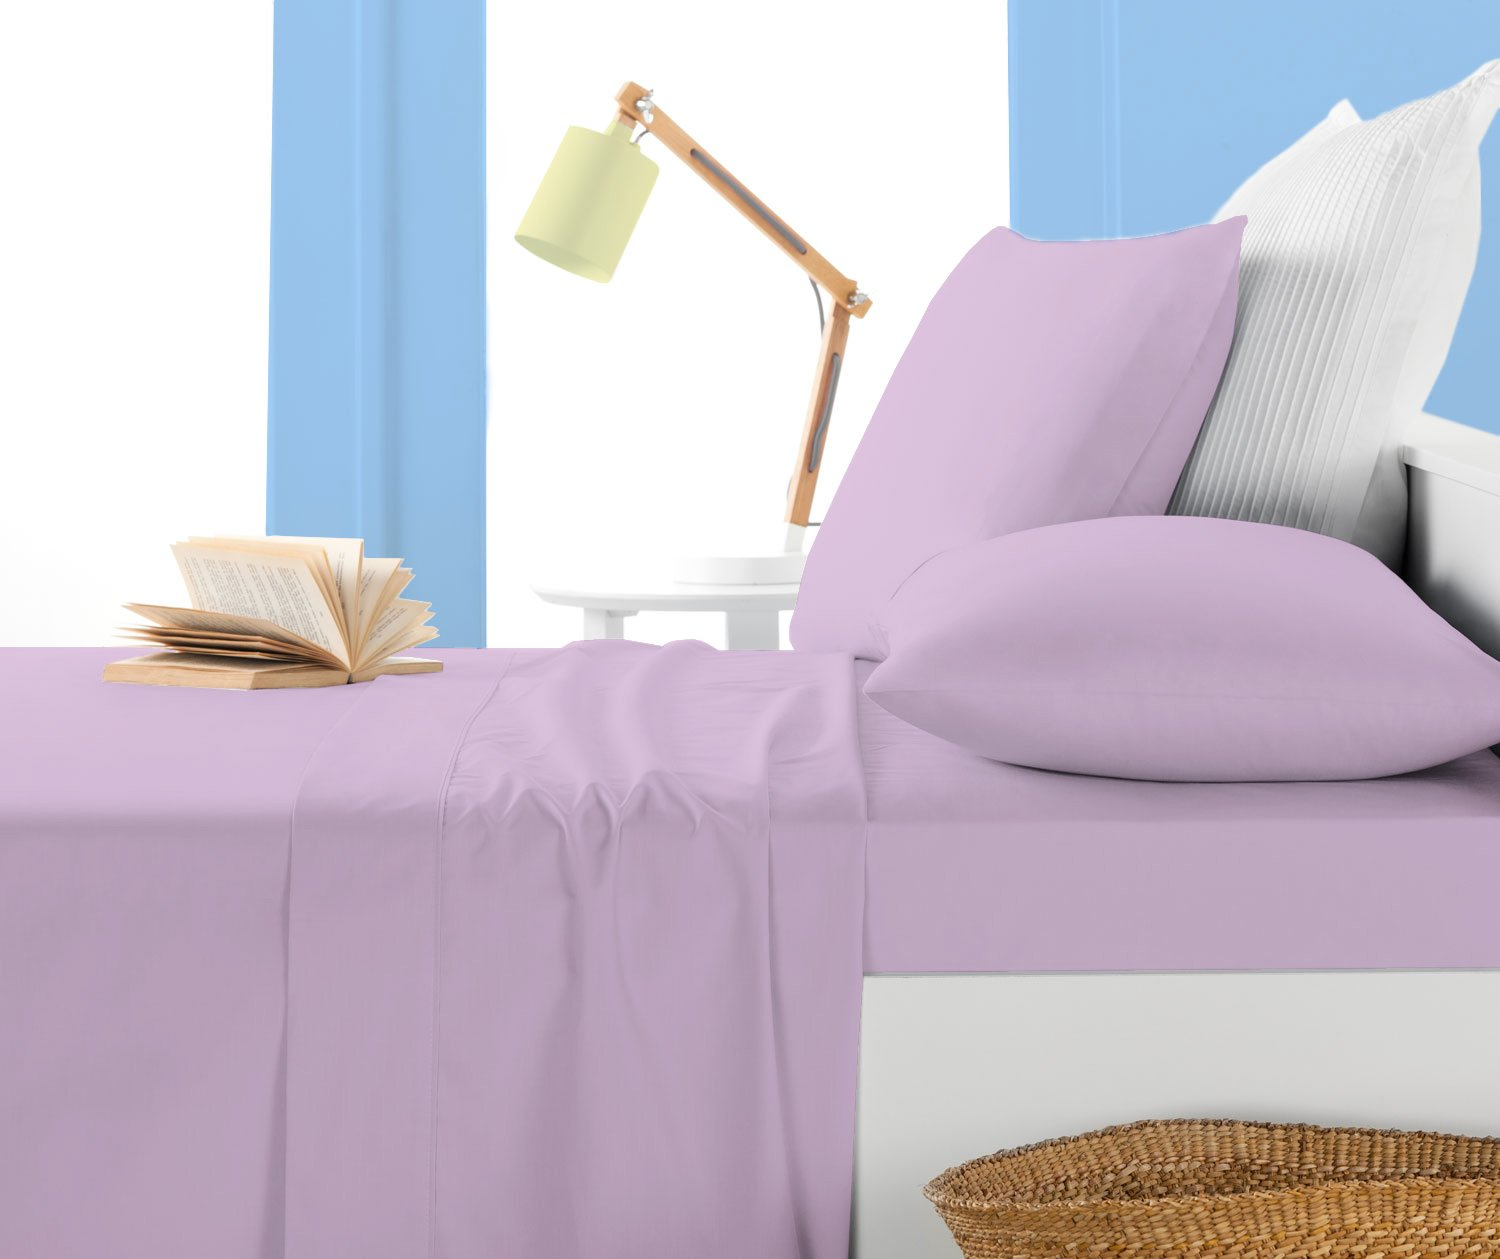 LACASA BEDDING 600 TC Pima Cotton Fitted sheet Italian Finish Solid ( Short Queen ,Lavender ) простыни candide простыня ivory cotton fitted sheet 130г м2 40x80 см